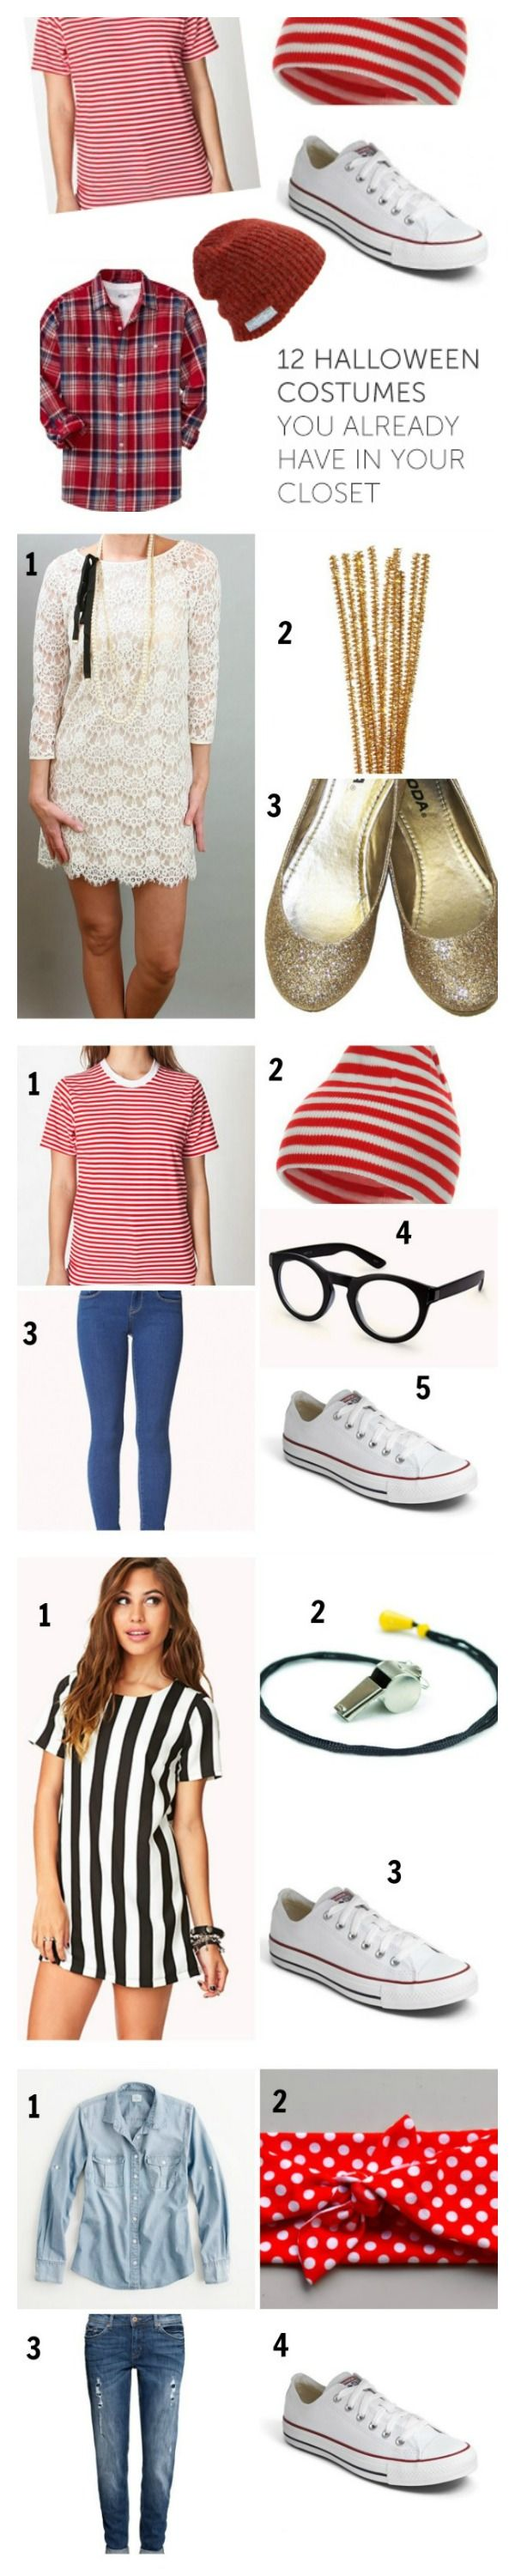 Halloween Costume Ideas Pulled From Your Closet! | dress up ...